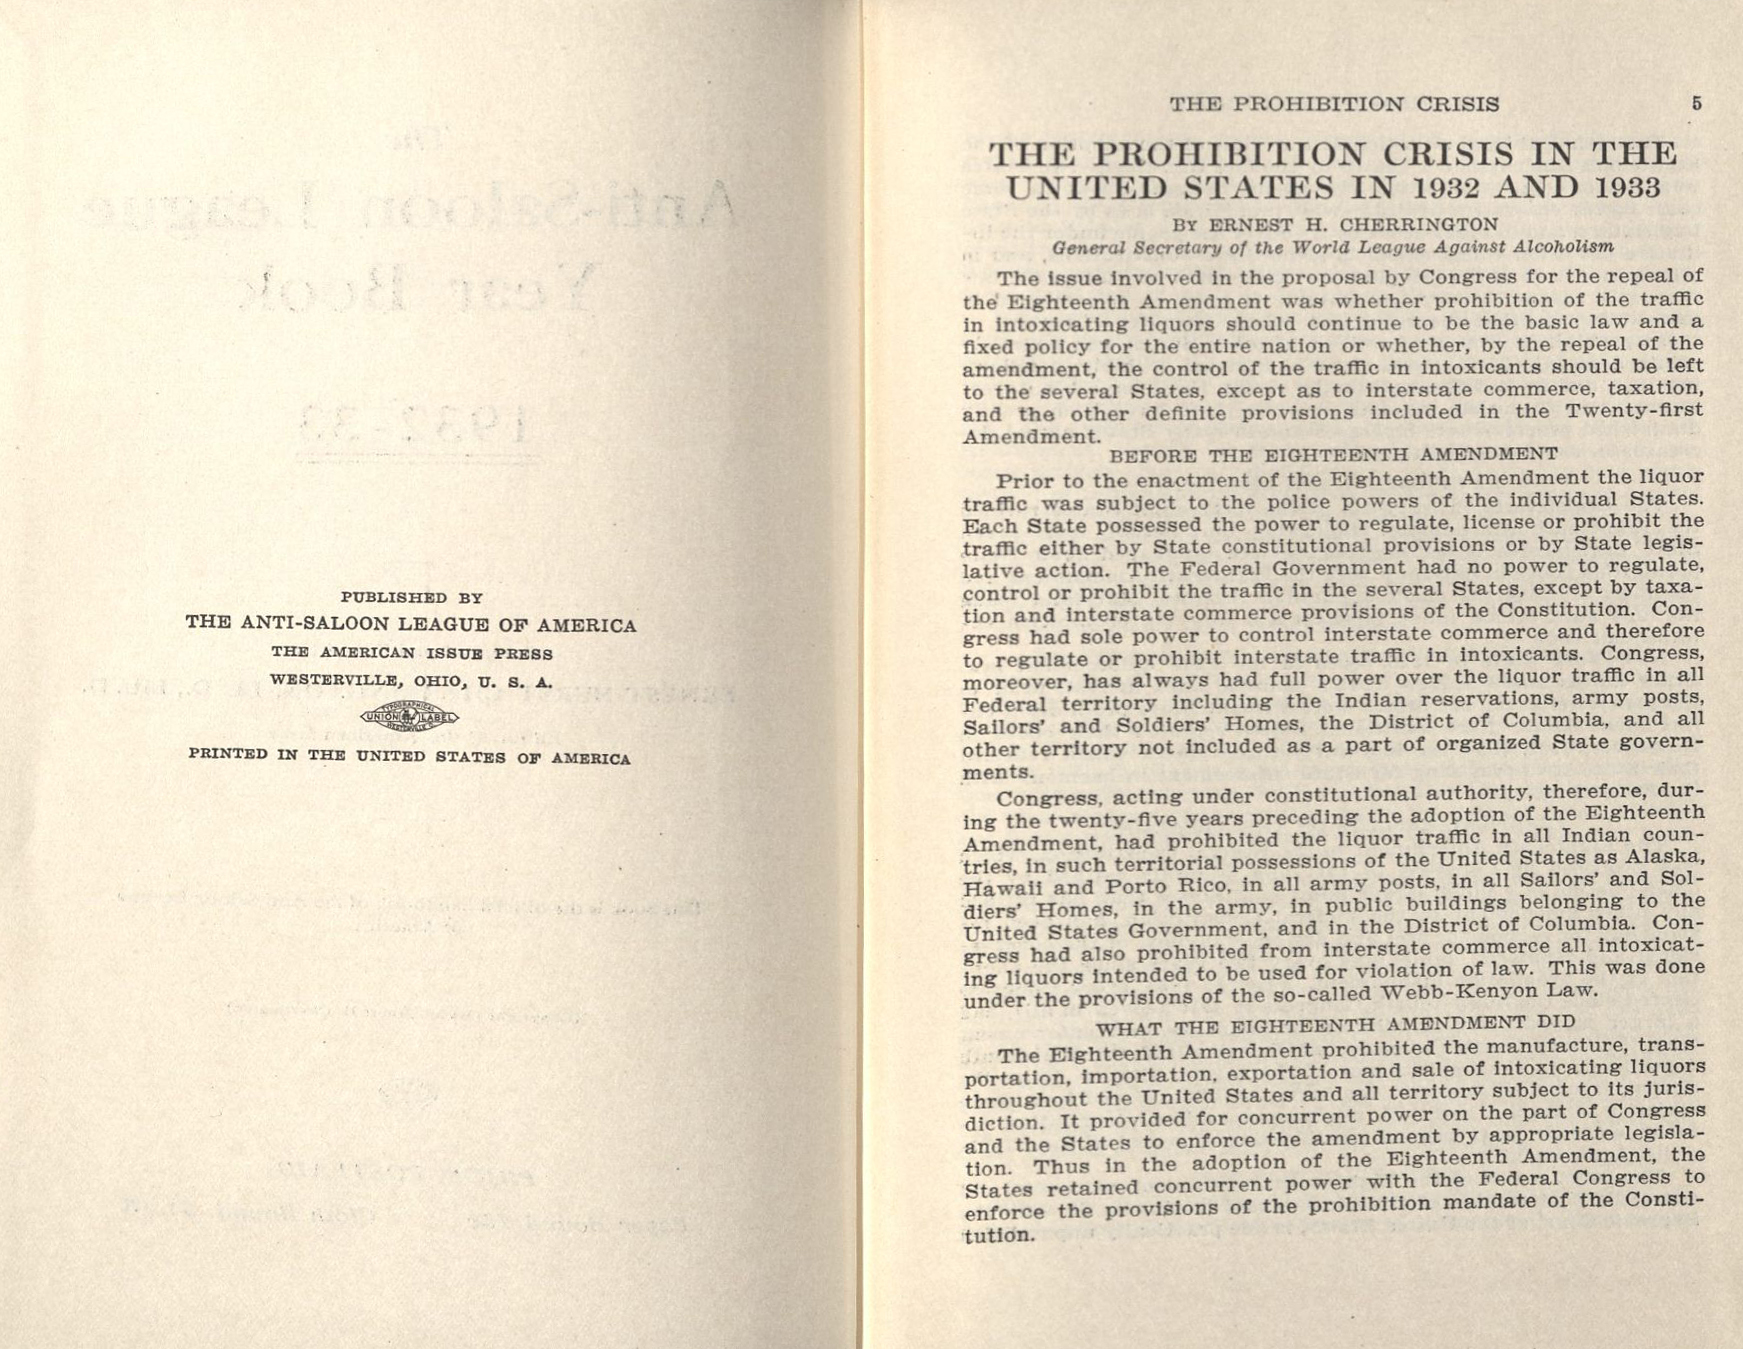 Anti Saloon League Yearbook 1932 33 Hv 5286 A8 1932 33